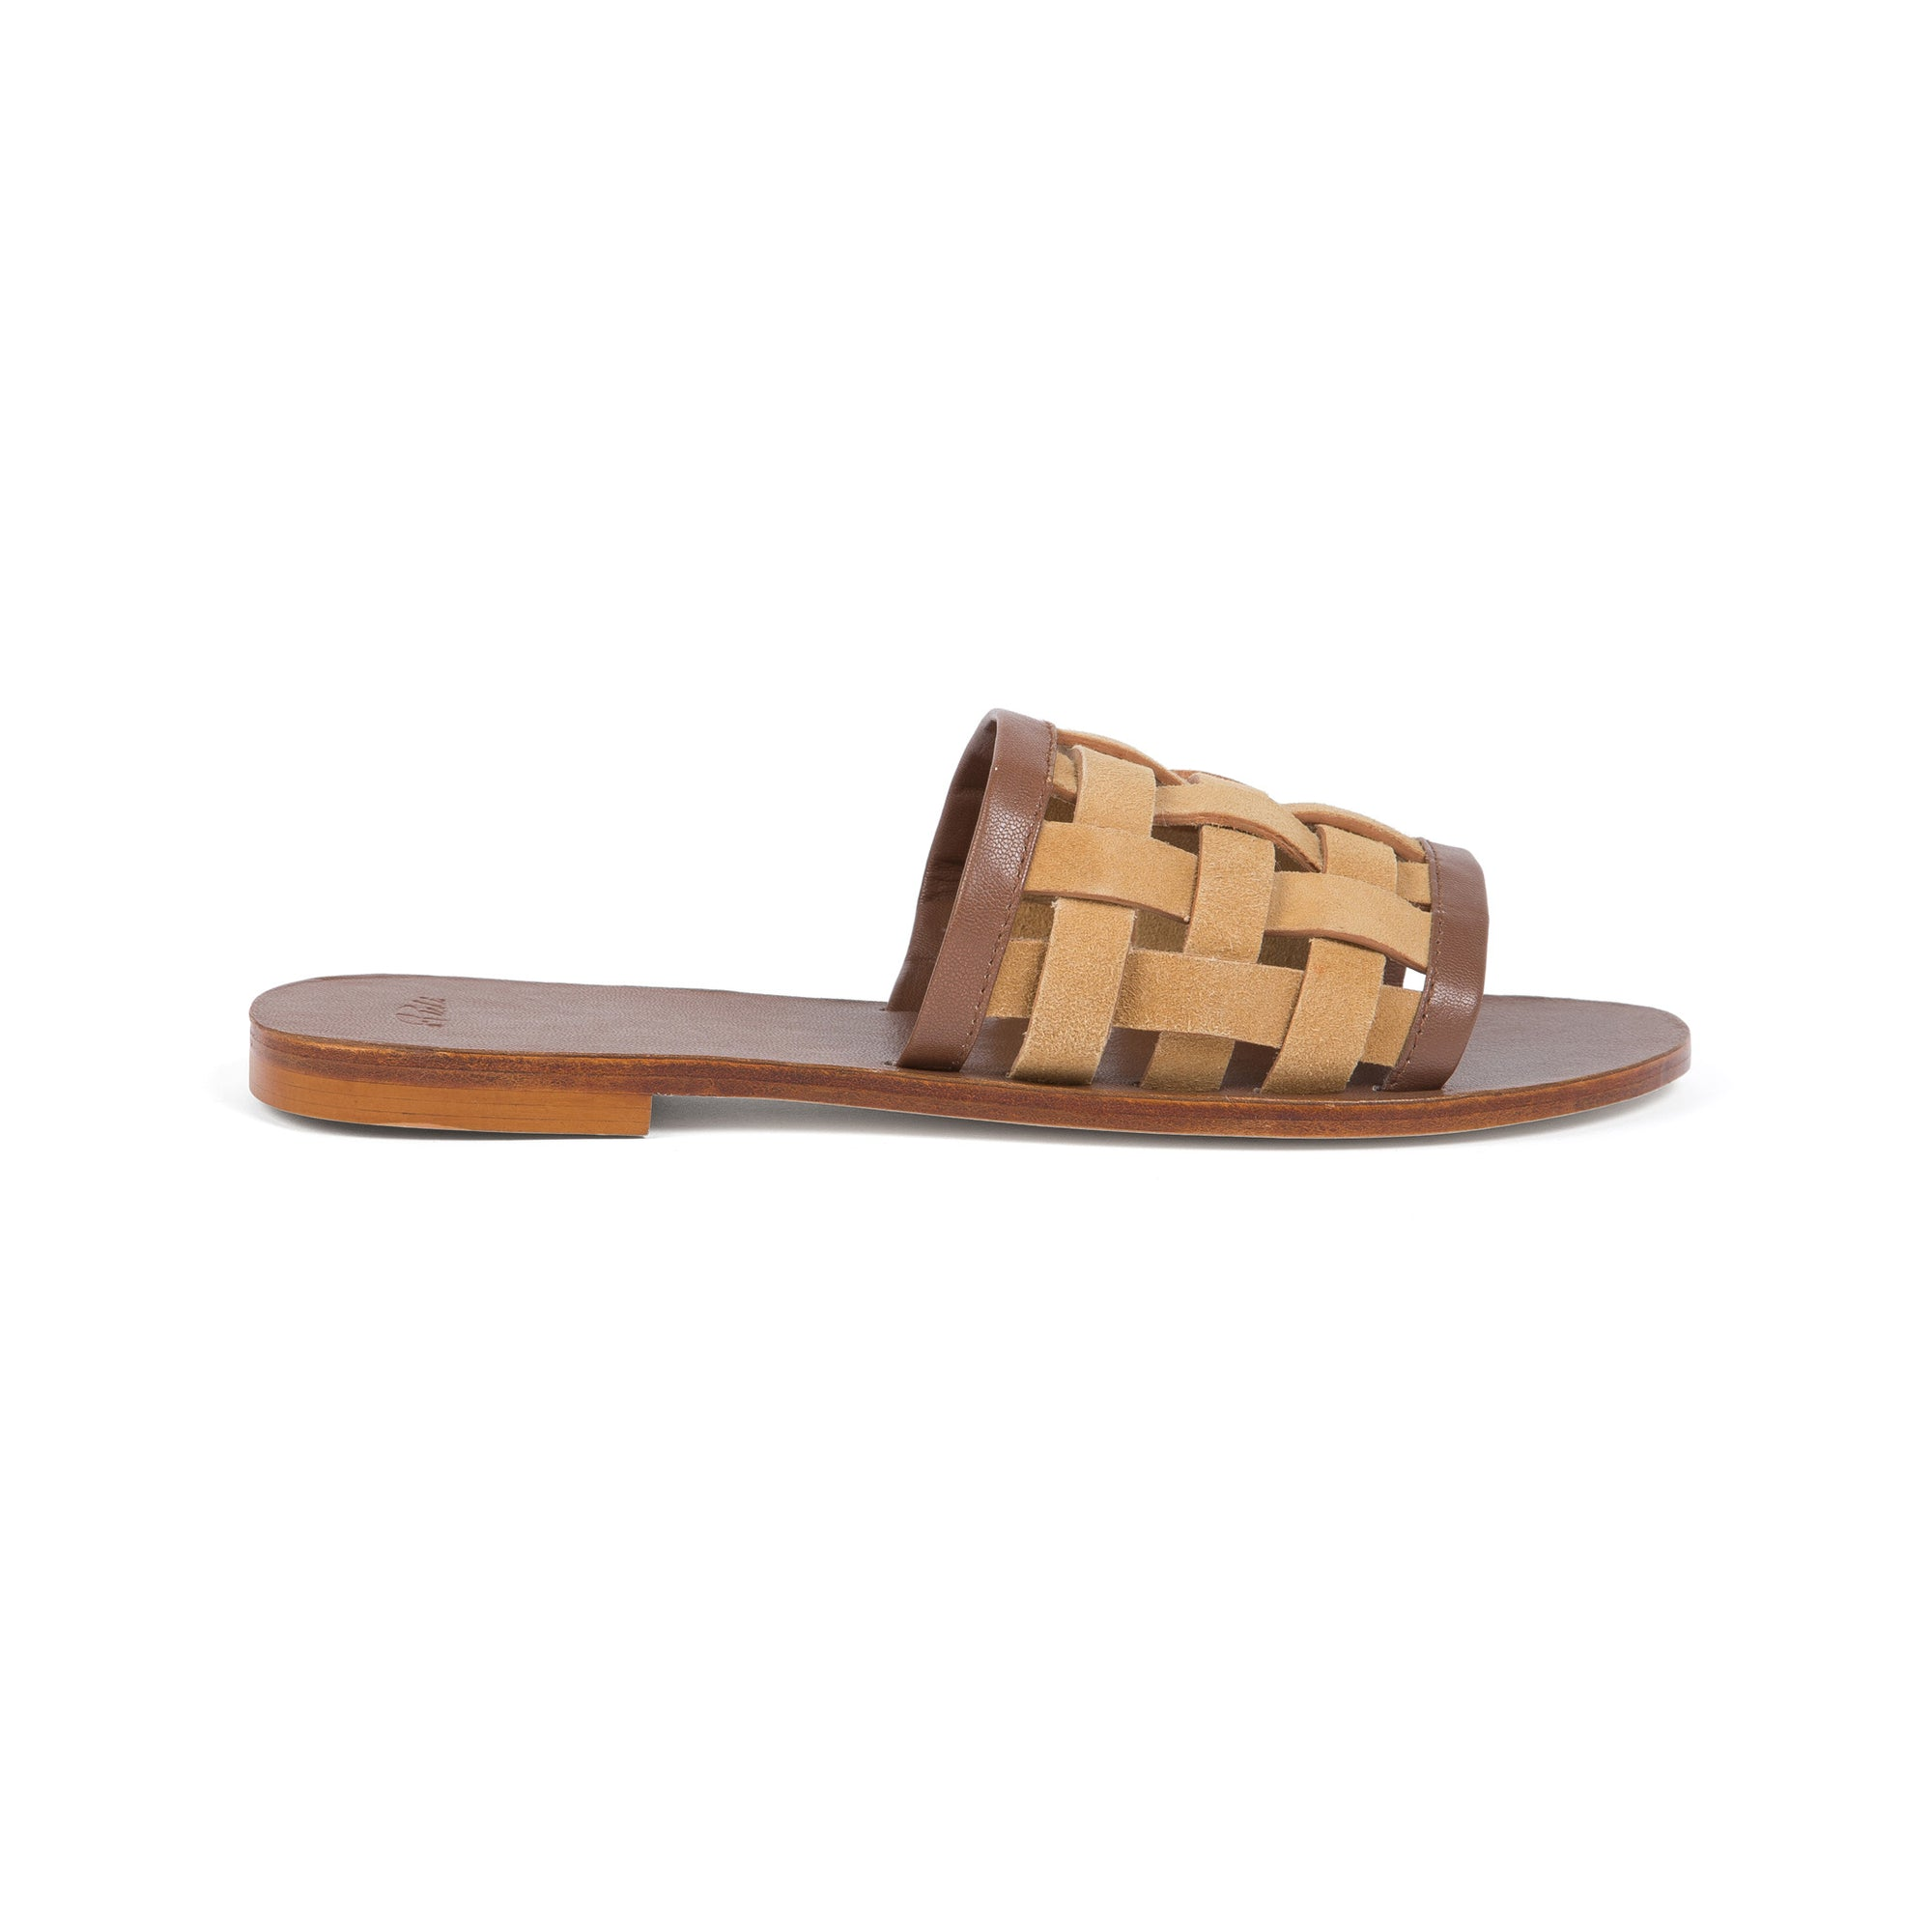 LOUNGER (Tan Suede)